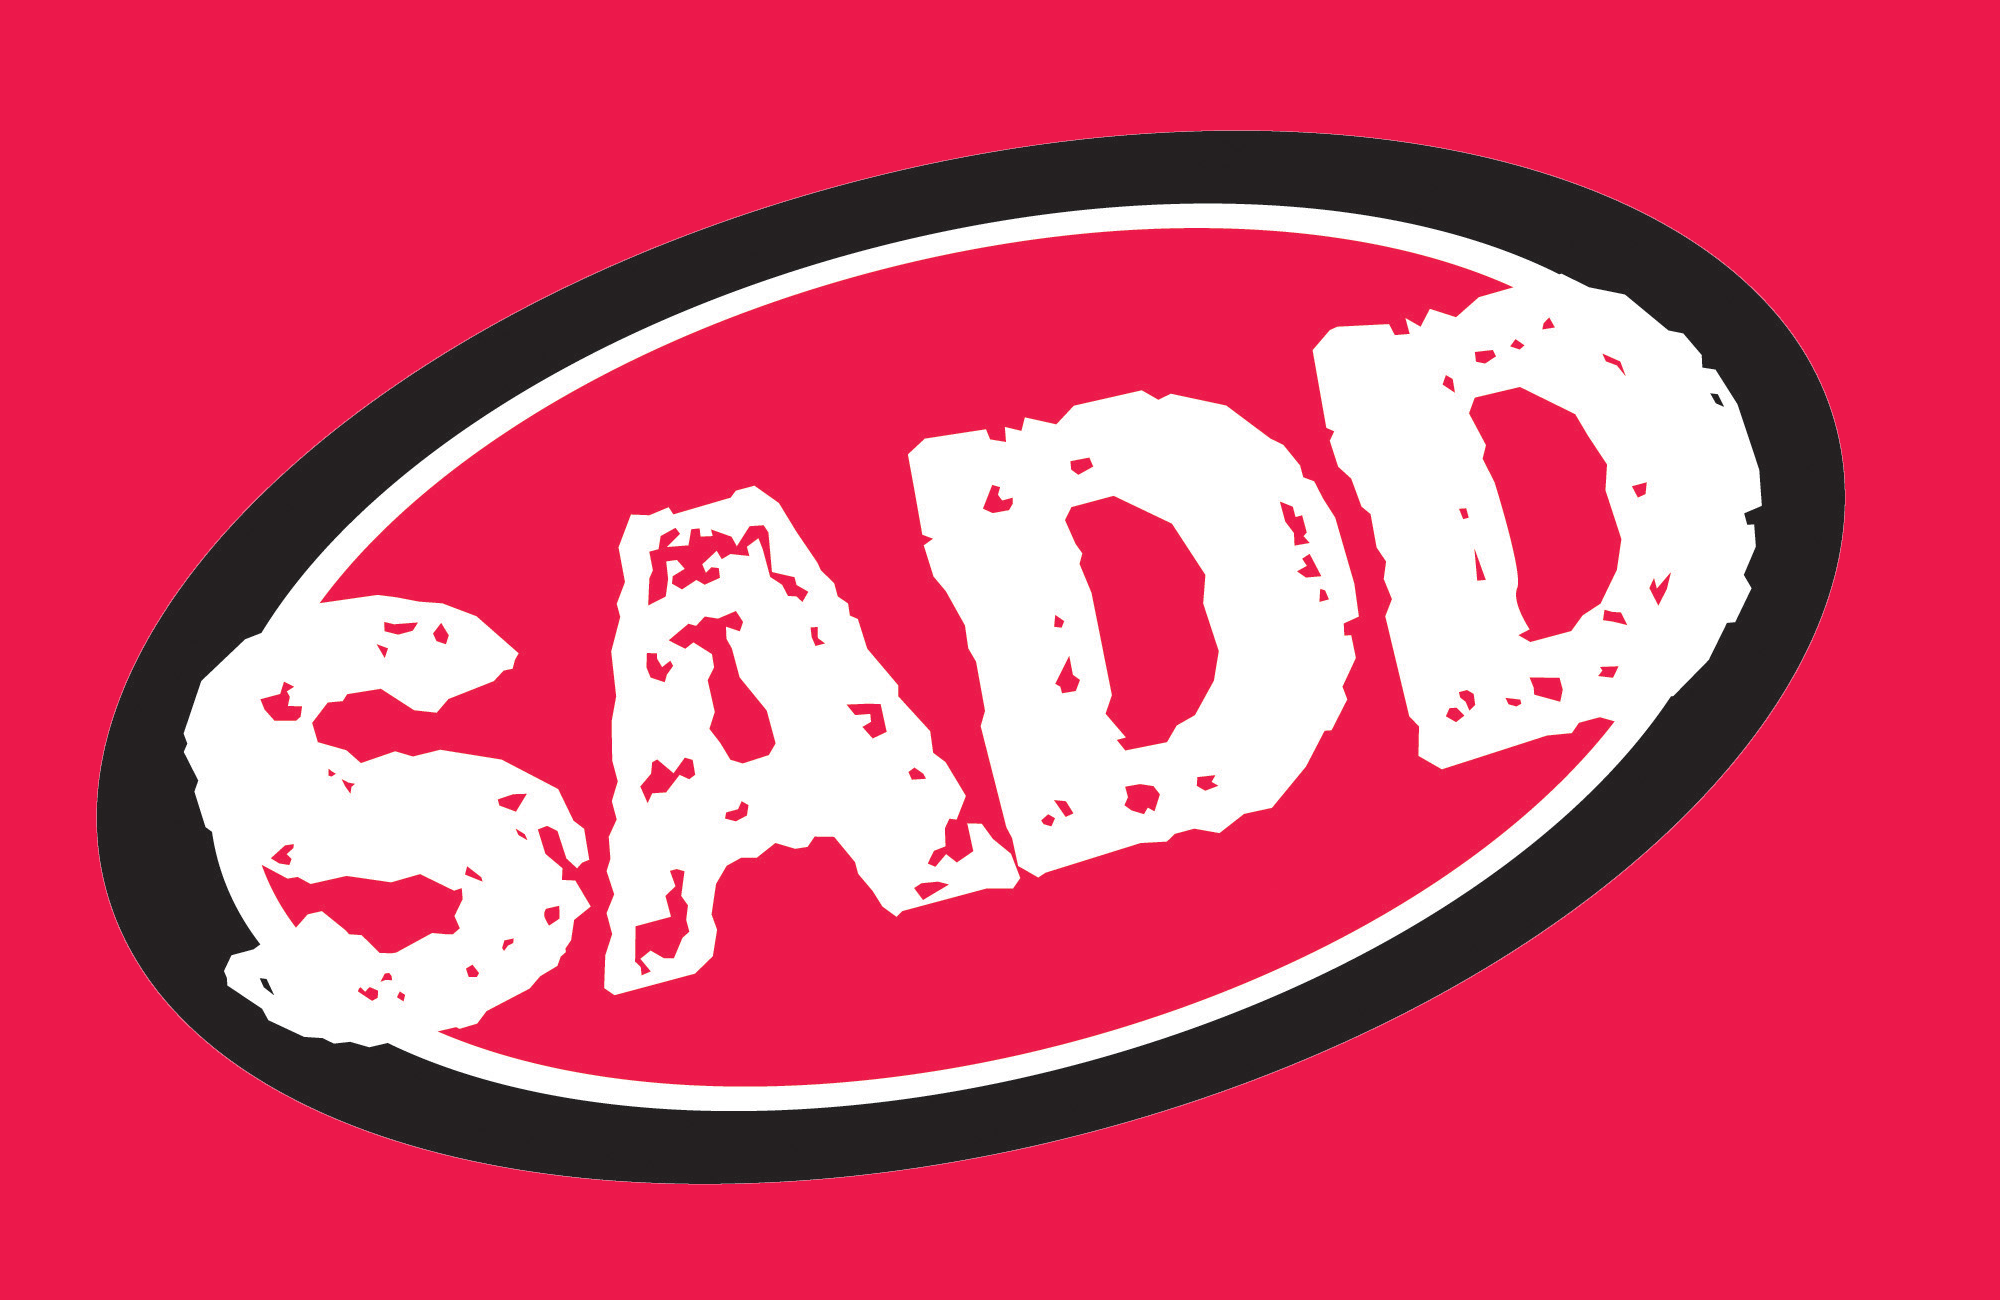 Destroy destructive decisions: Join S.A.D.D.